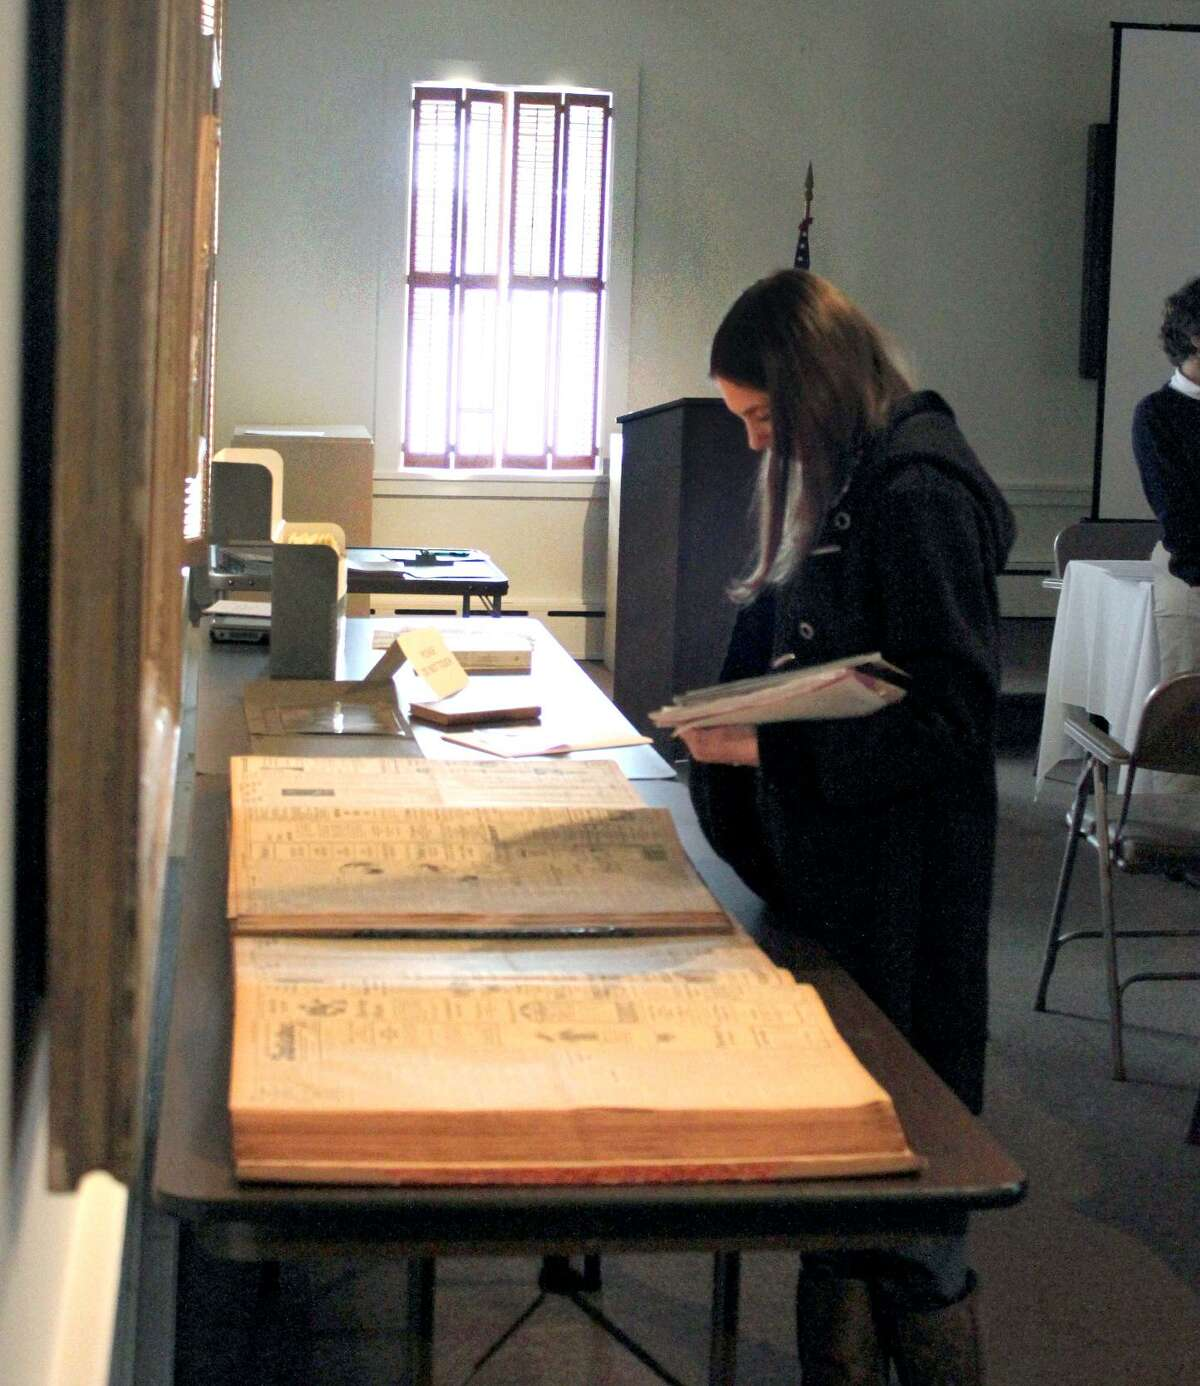 A student visiting the Torrington Historical Society looks over bound copies of vintage newspapers.